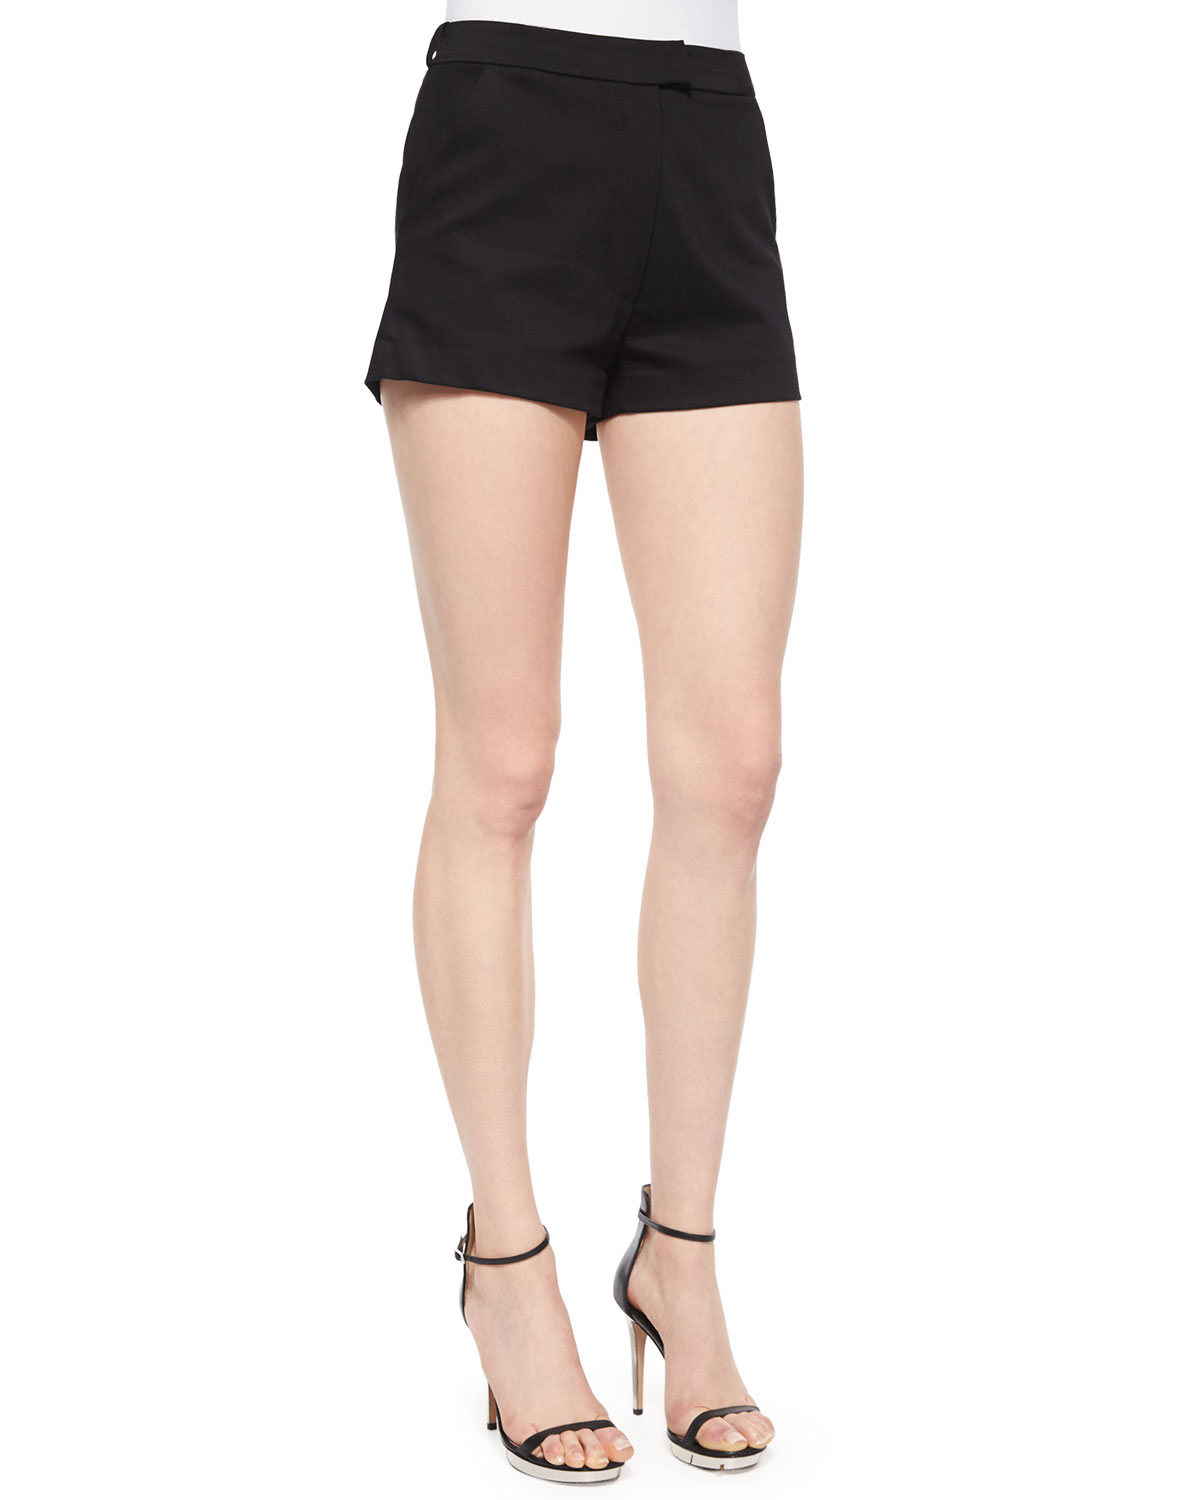 Alexis Neri Dress Shorts in Black  Lyst